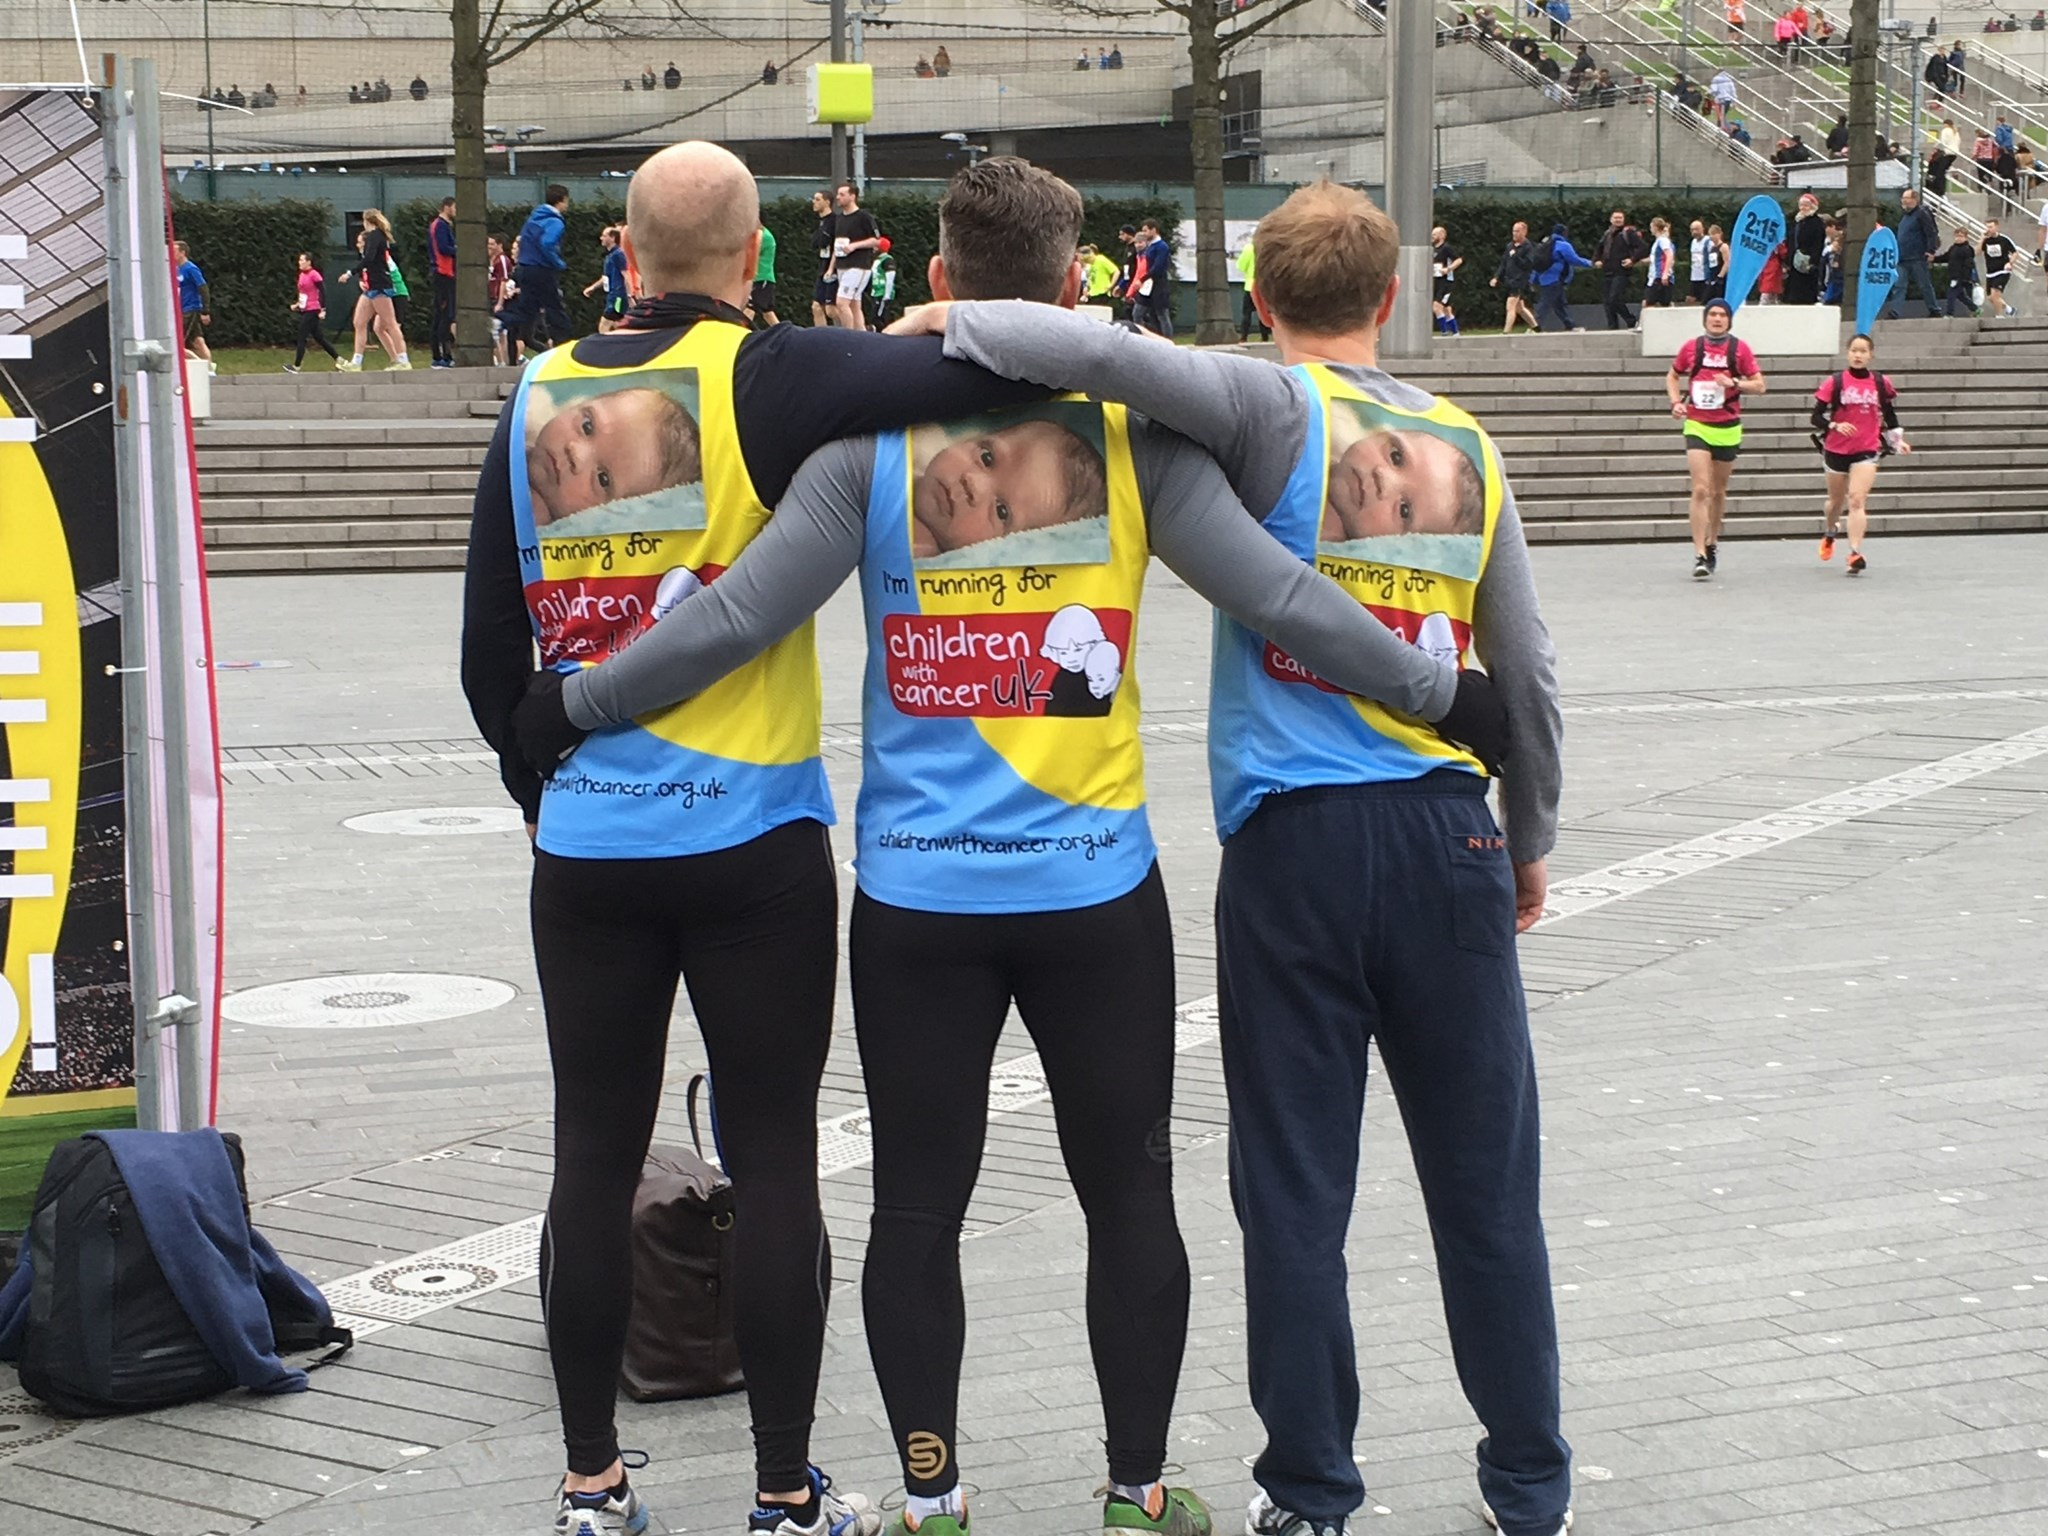 Daddy, Steve Rodgers and Steve Prance ran the half Marathon in your memory